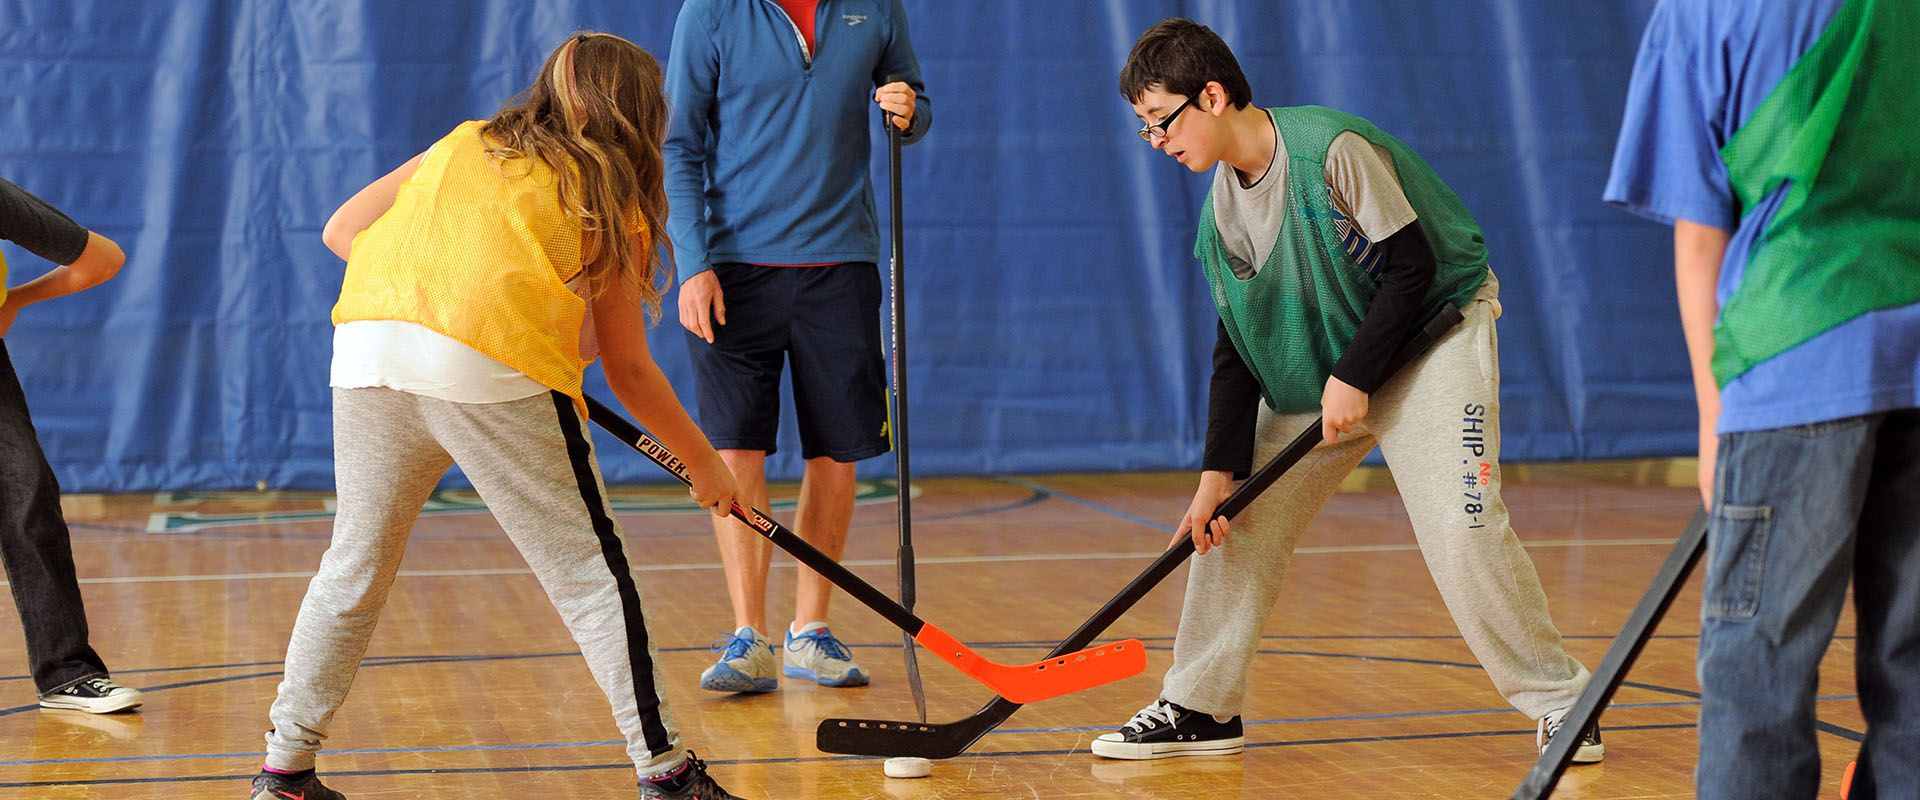 Elementary students playing floor hockey